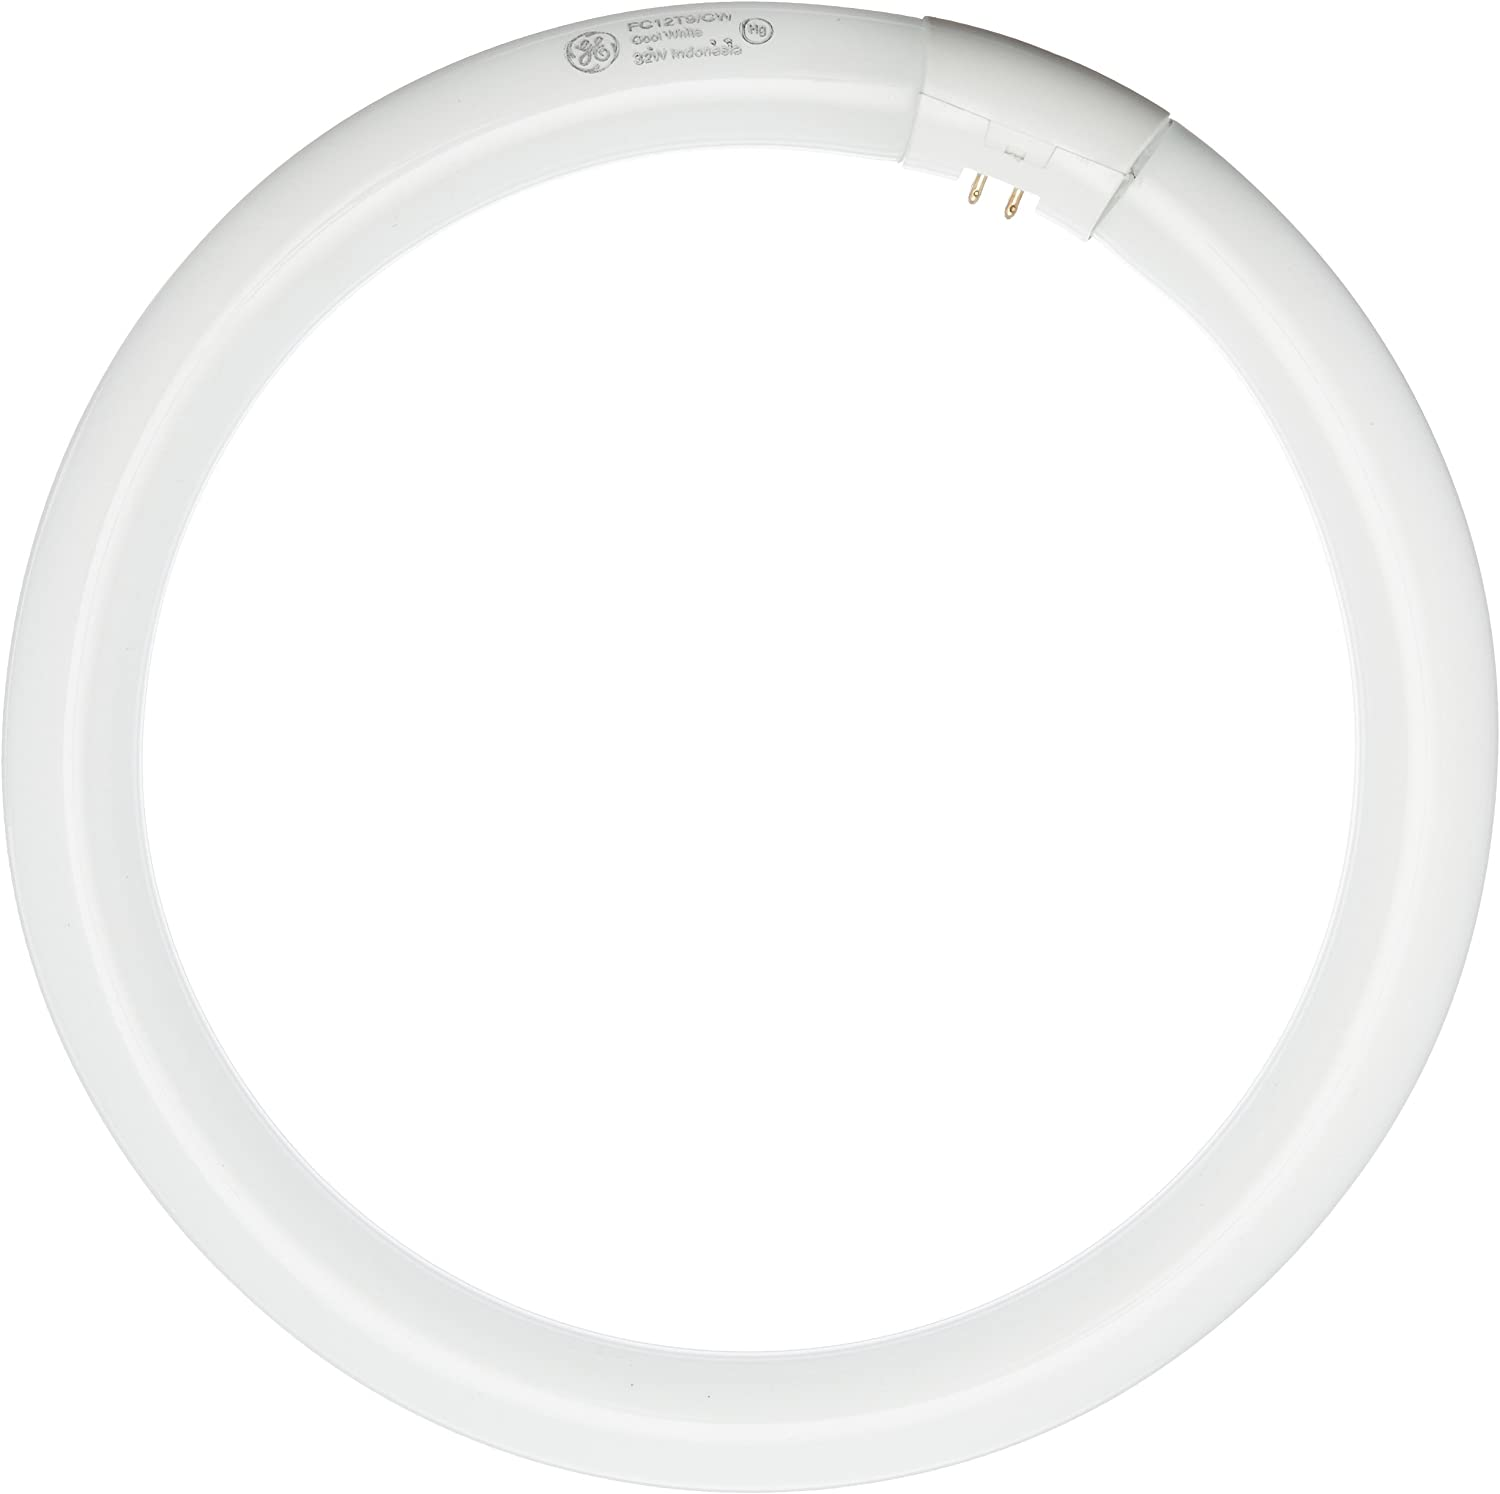 GE Lighting 33890 Cool White 12-Inch Diameter Circline Fluorescent Bulb, 32-Watt